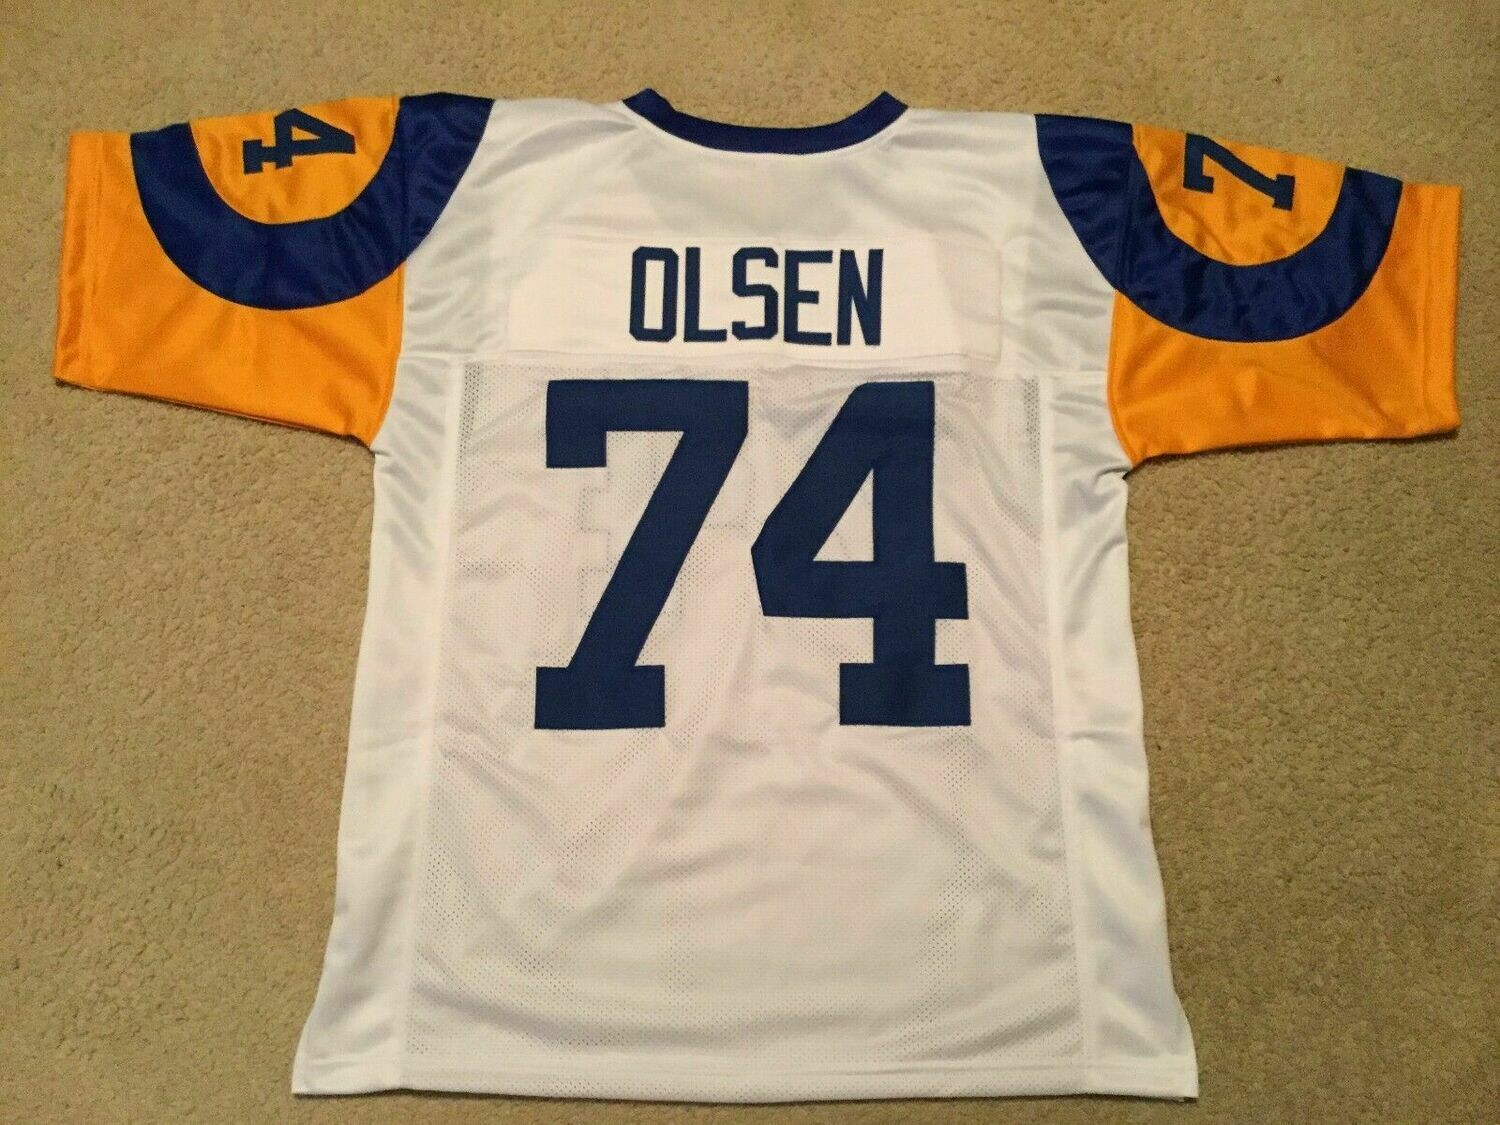 UNSIGNED CUSTOM Sewn Stitched Merlin Olsen White Jersey